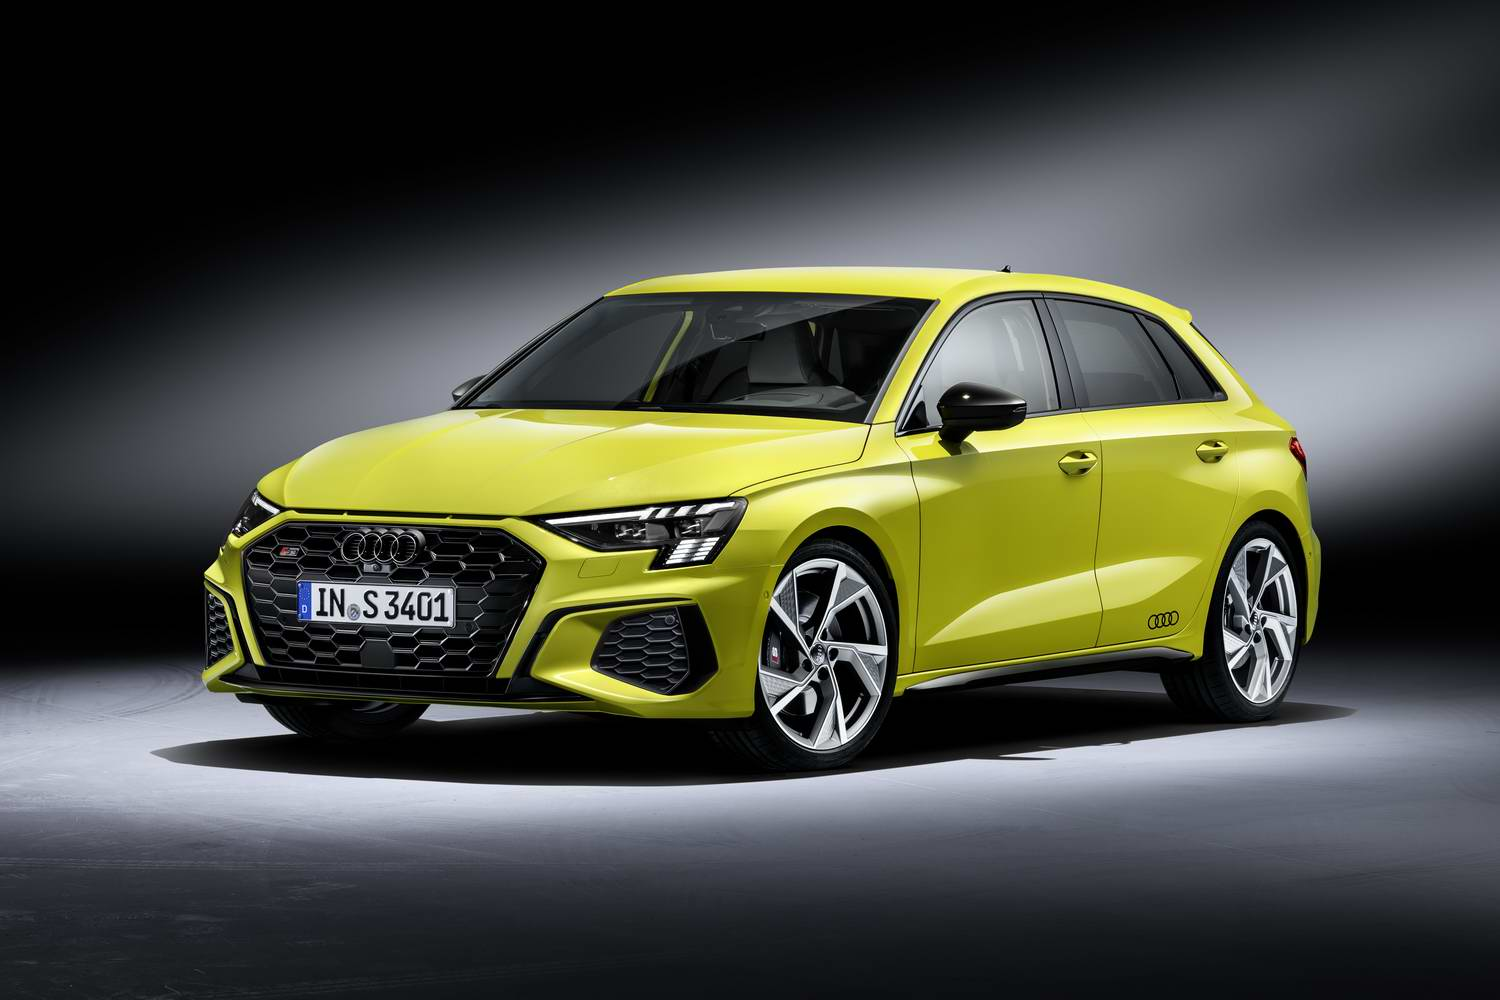 Car News | Audi announces new S3 models | CompleteCar.ie